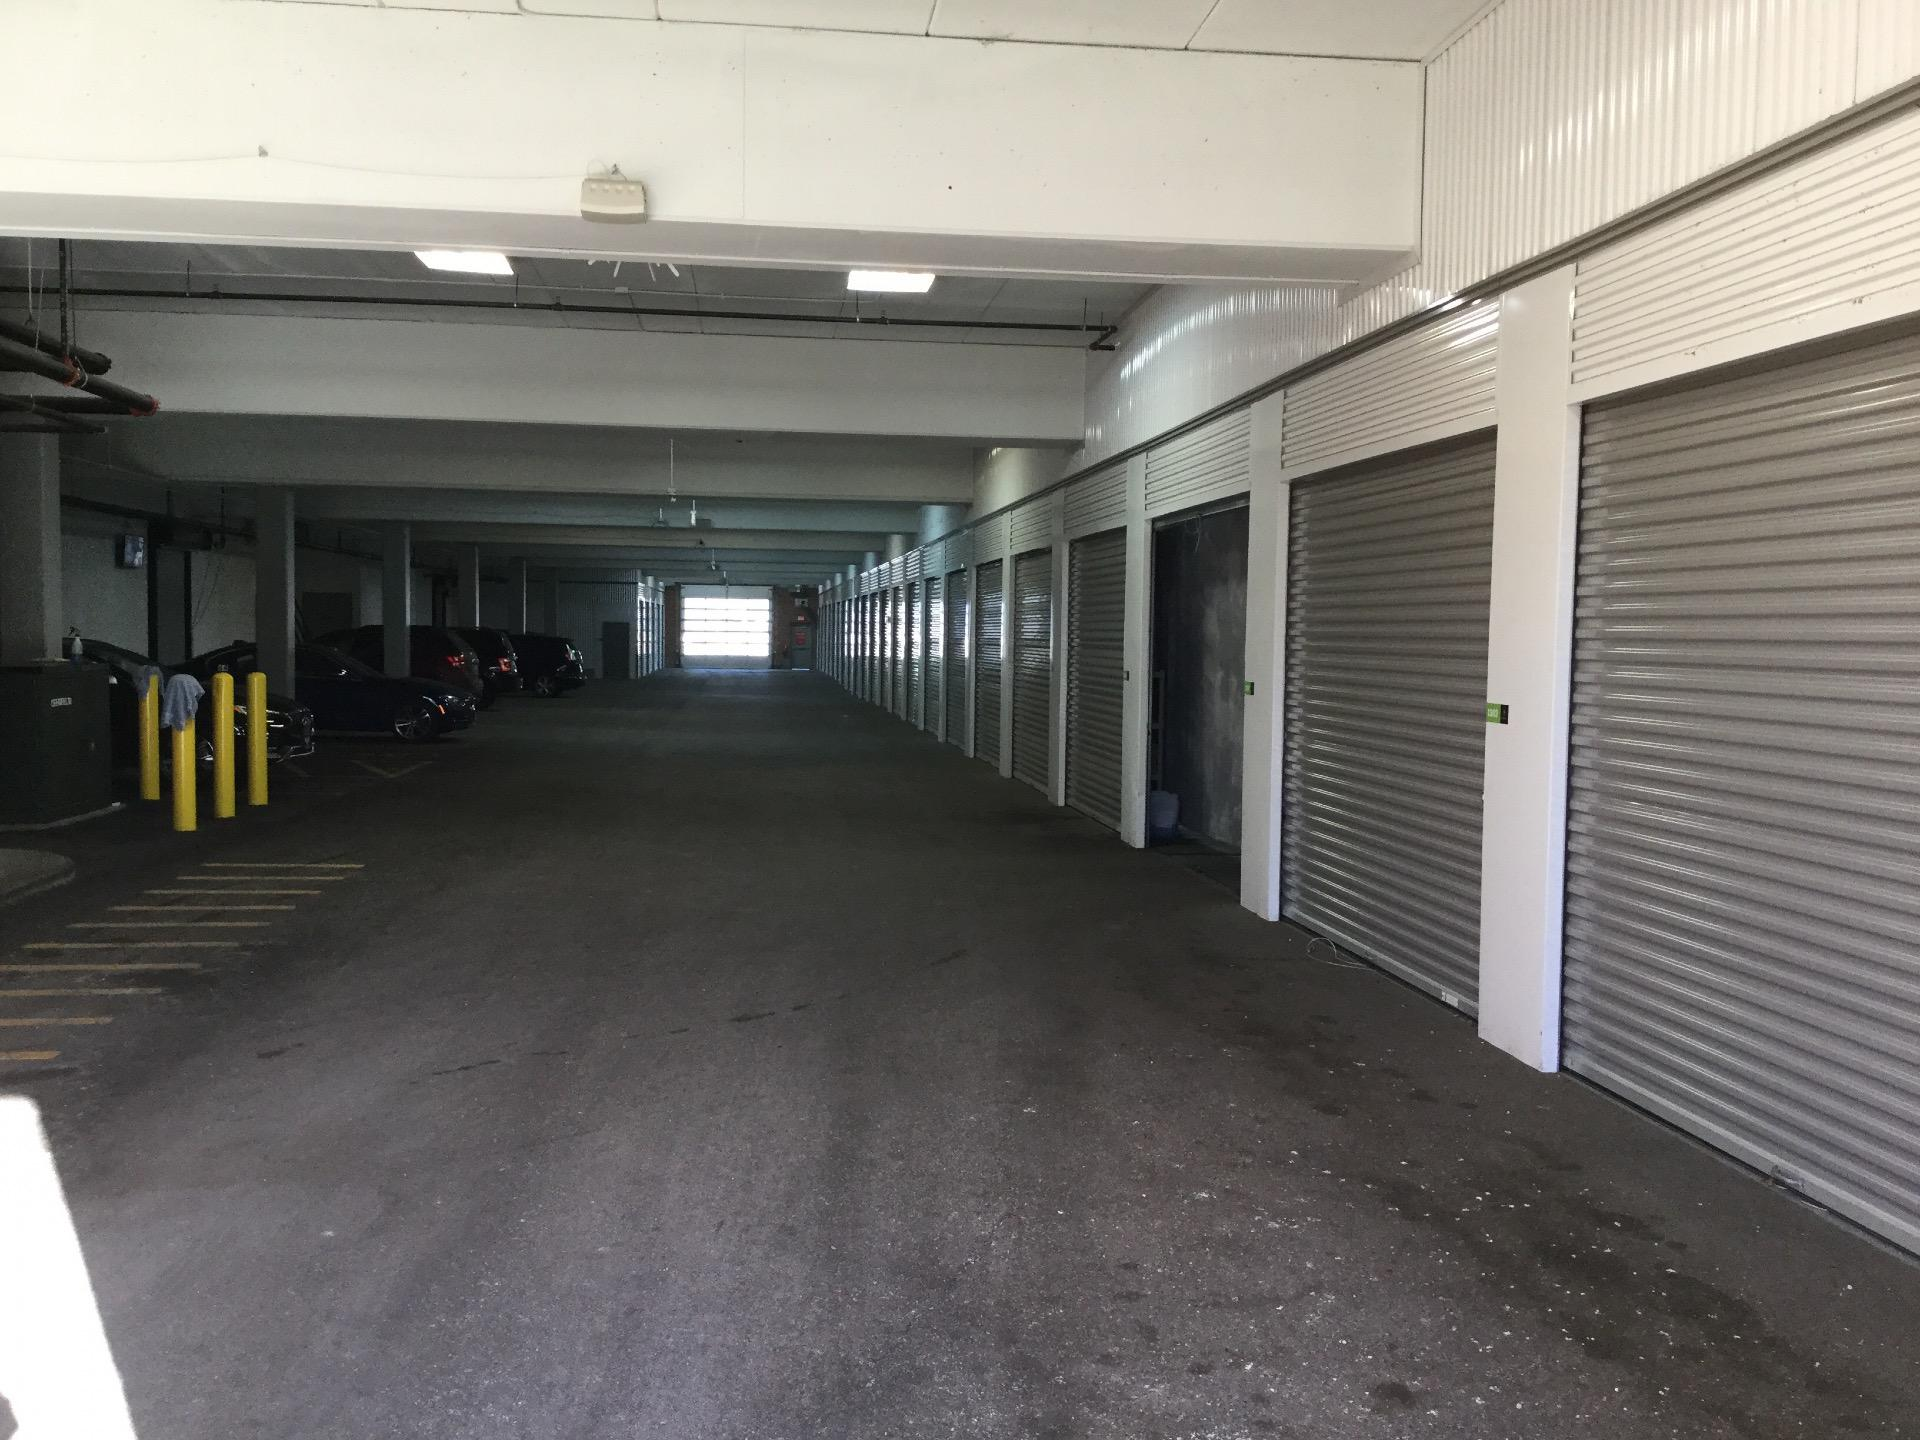 Life storage in barrington 1455 s barrington rd rent storage units 567 - Small storage spaces for rent model ...